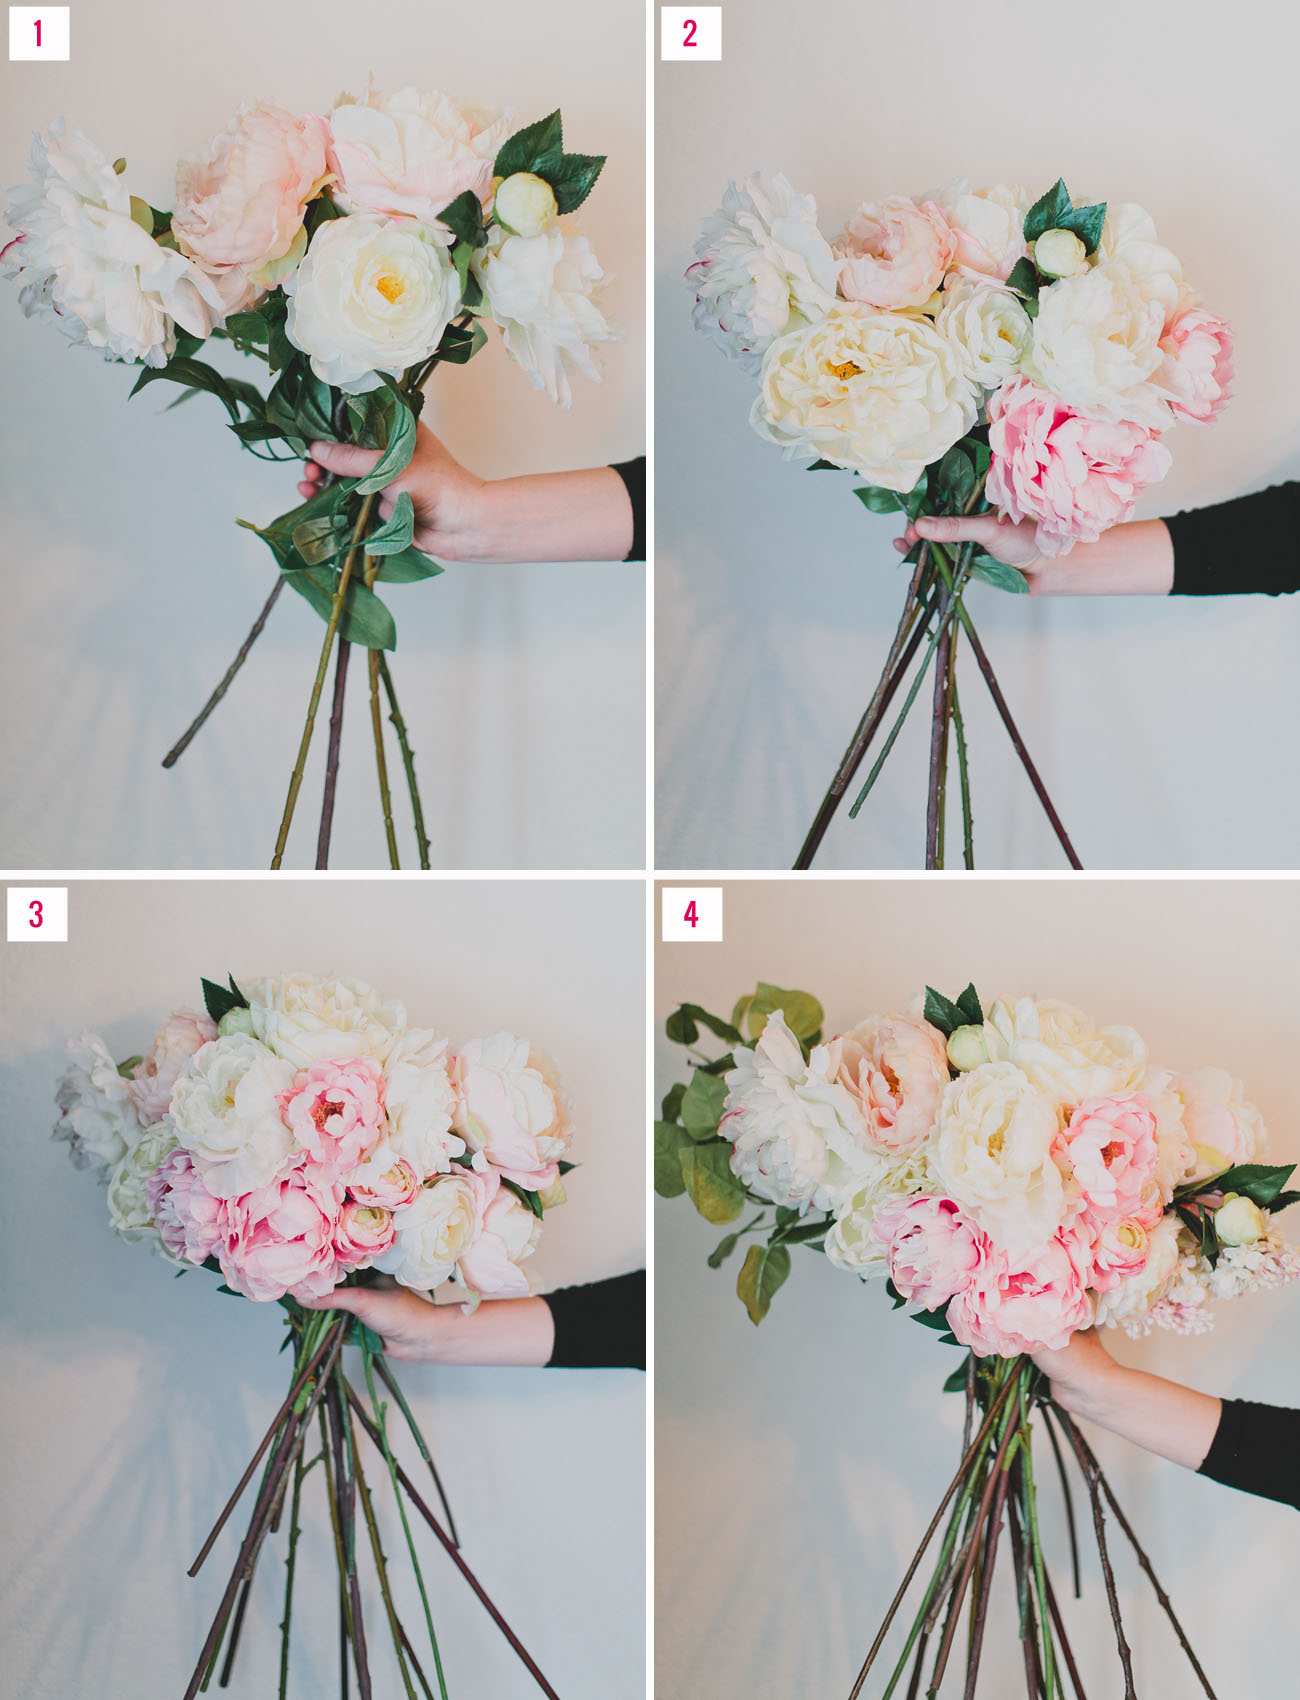 How To Make A Silk Floral Arrangement How To Make Fake Flower Arrangements My Web Value